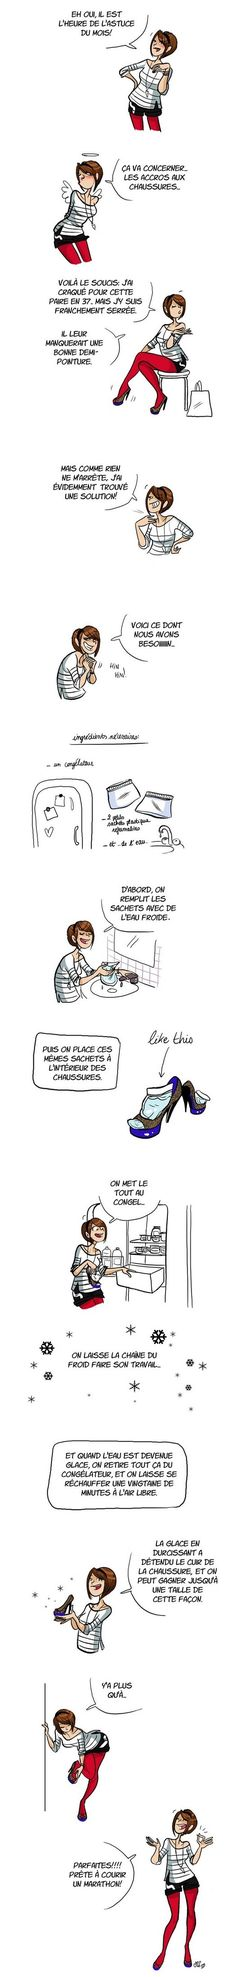 comment agrandir tes chaussures Tips & Tricks, Good To Know, Me Too Shoes, Life Hacks, Beauty Hacks, Funny, Cool Stuff, Iceberg, Solution